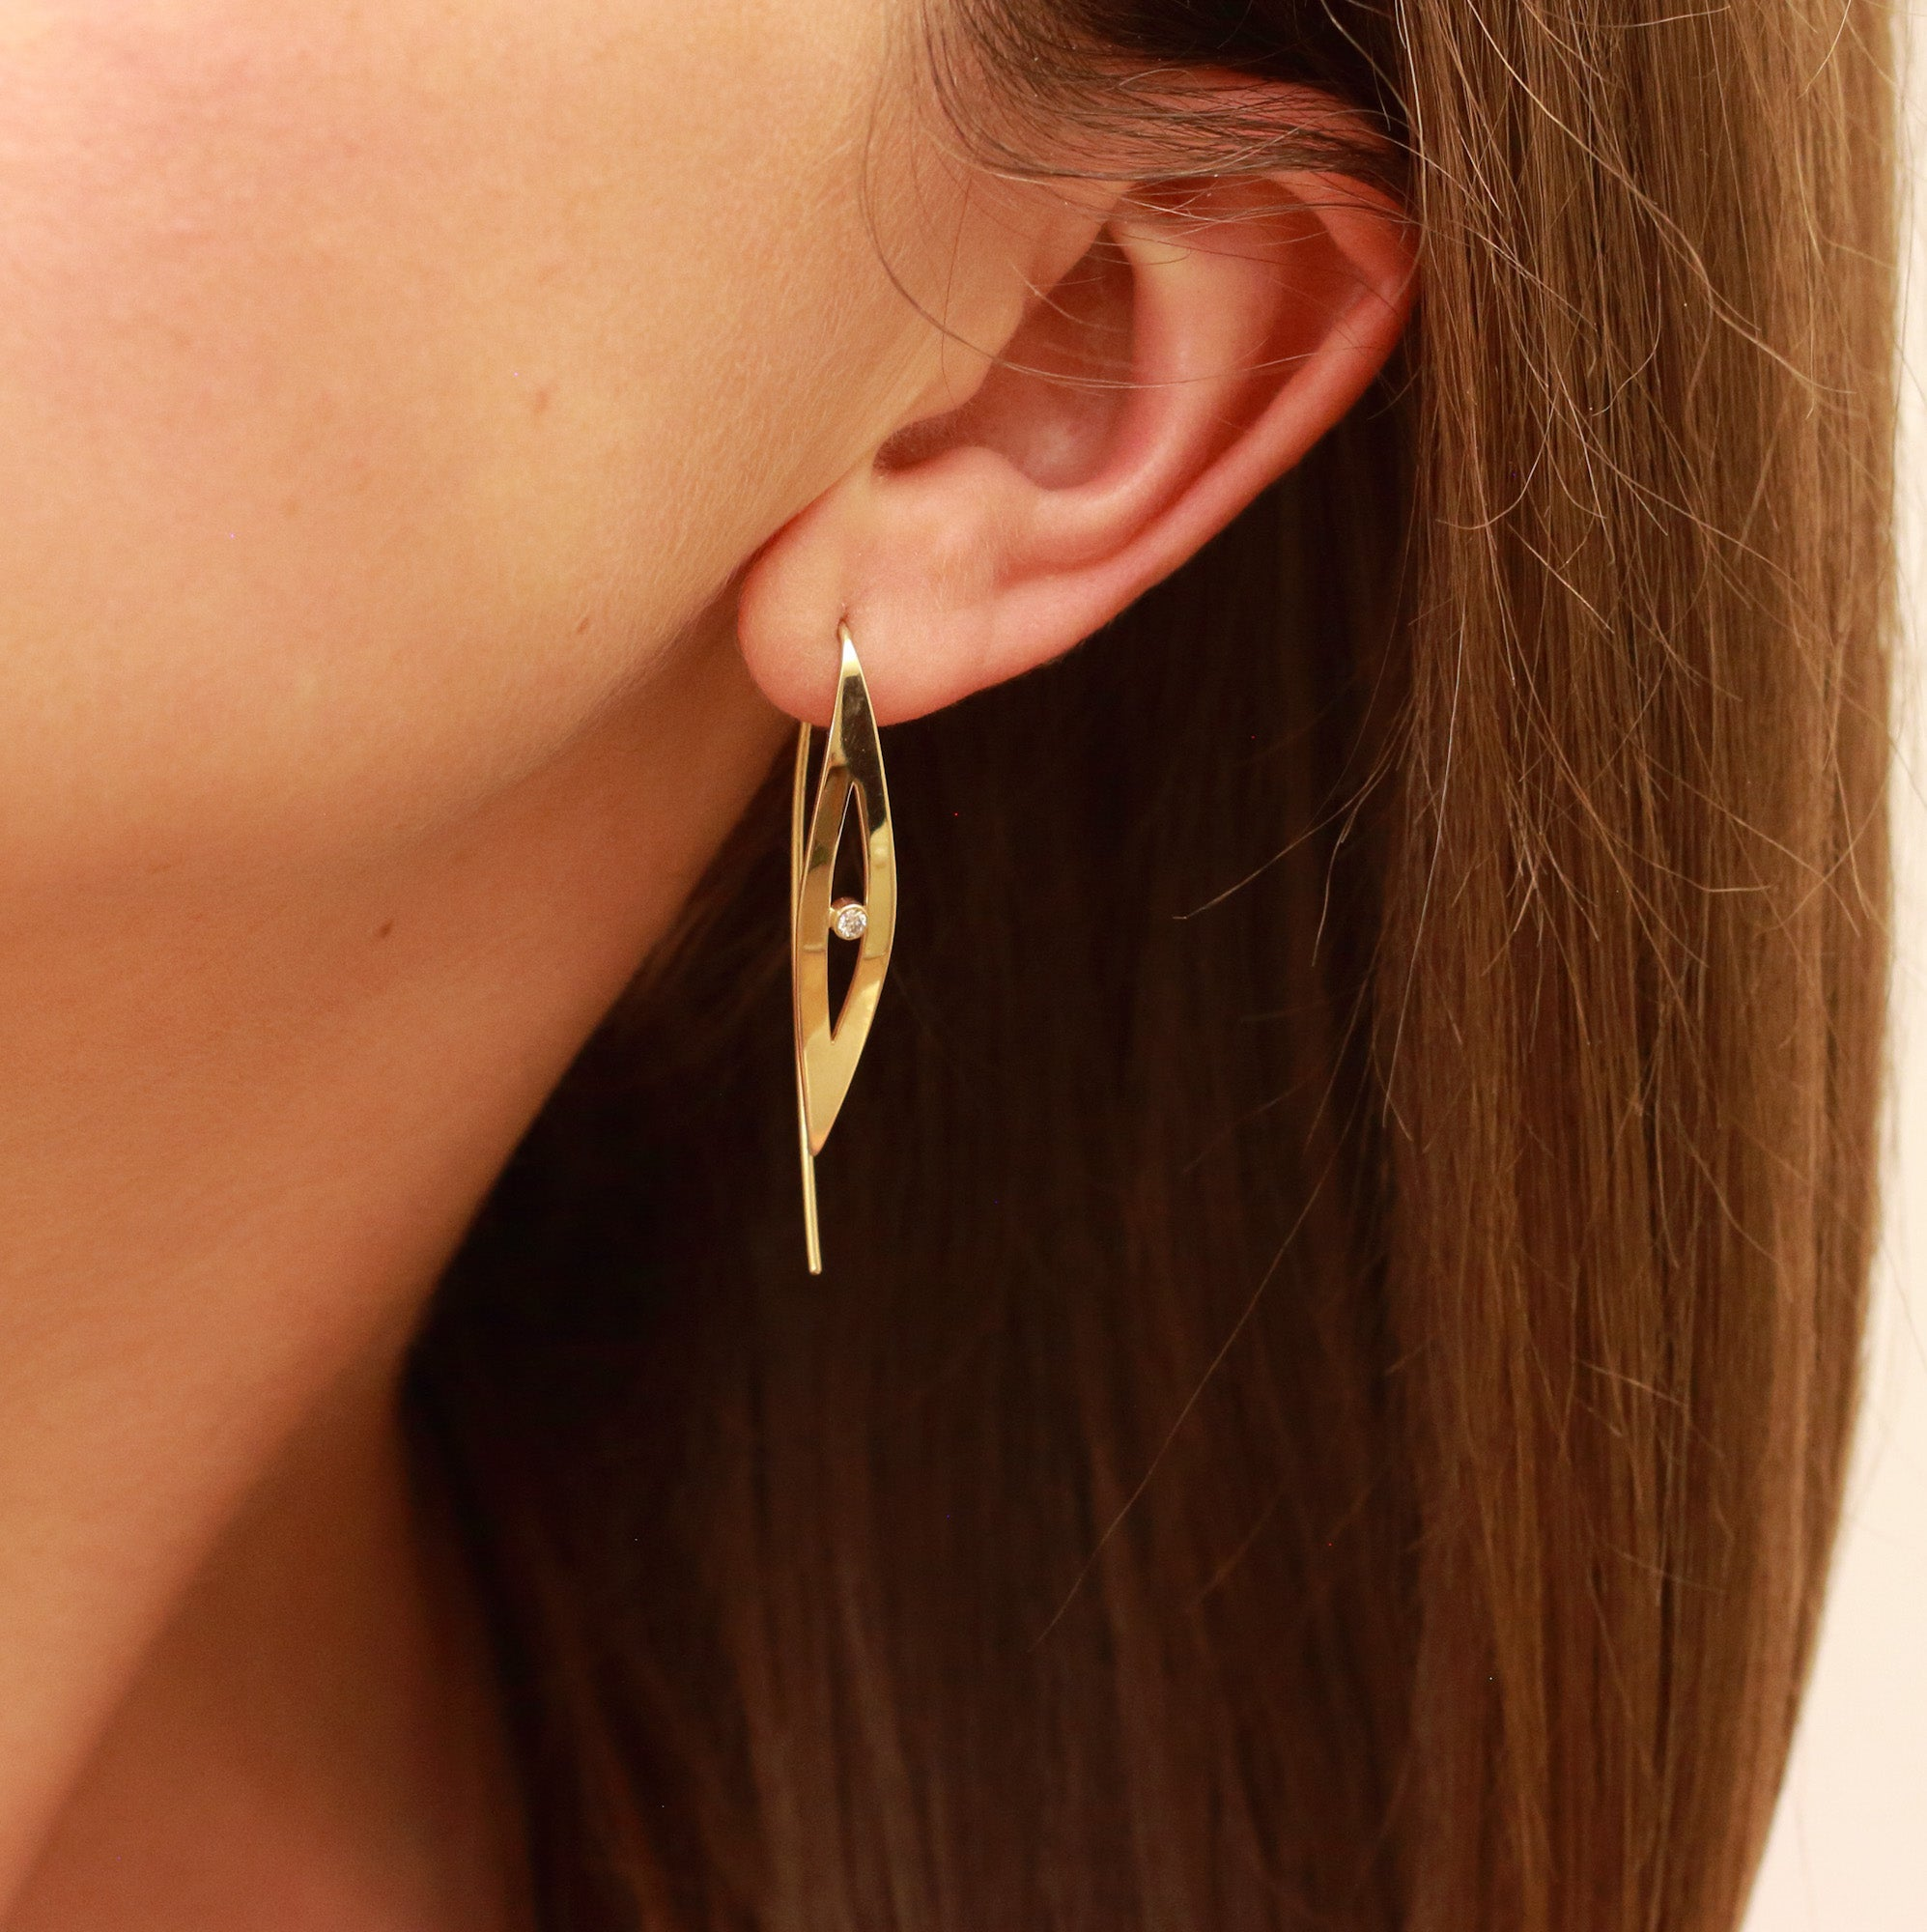 Birch - 14k gold / diamonds earrings